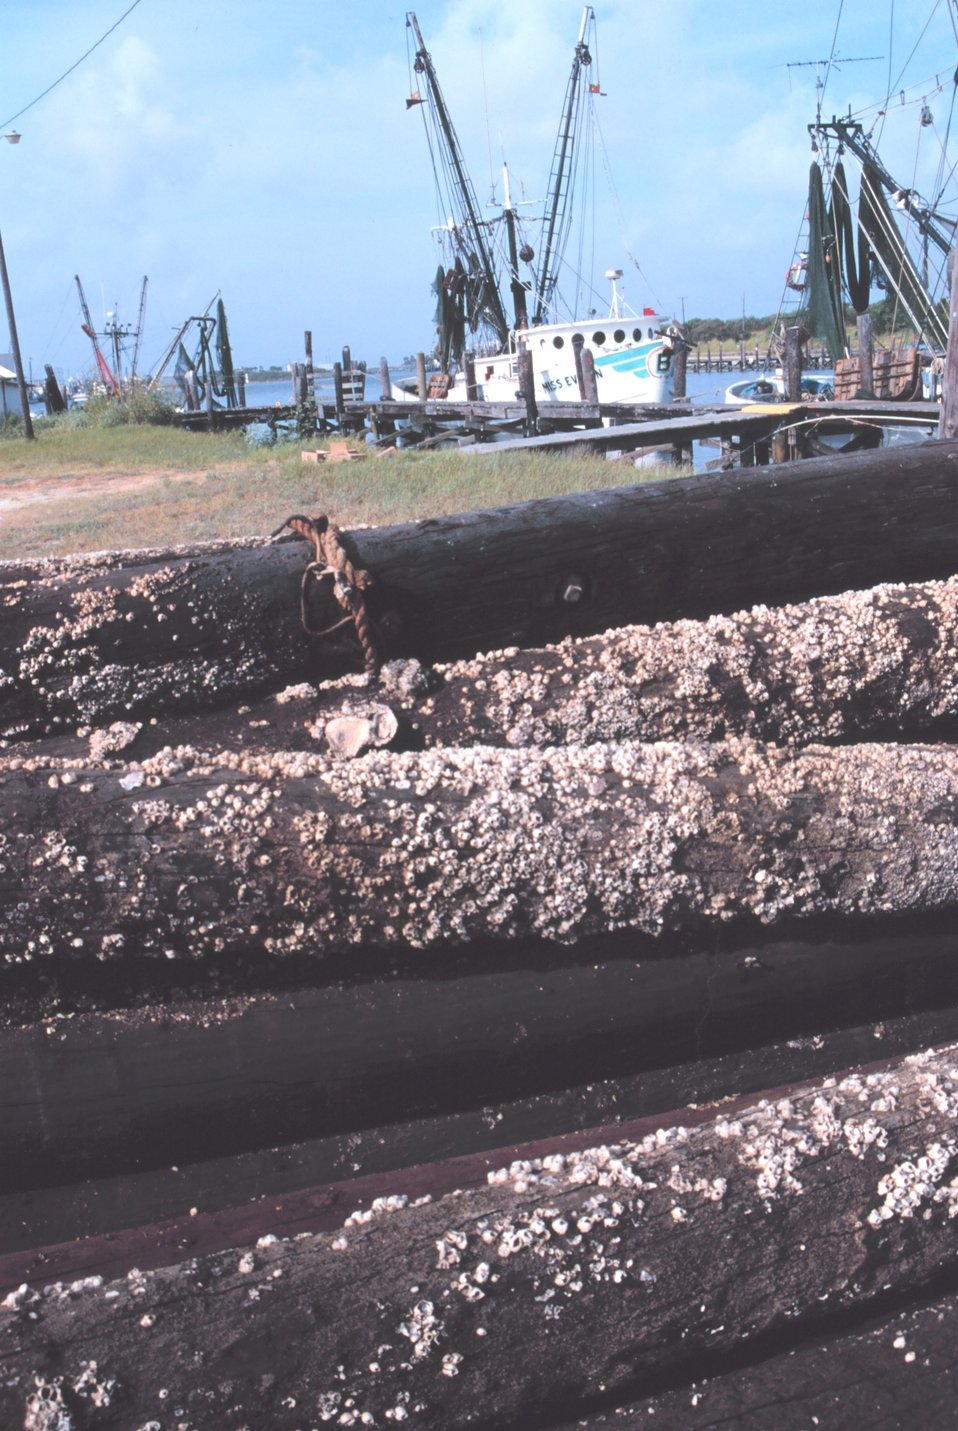 Shrimp boats viewed over old barnacle-encrusted pilings at Conn Brown Harbor